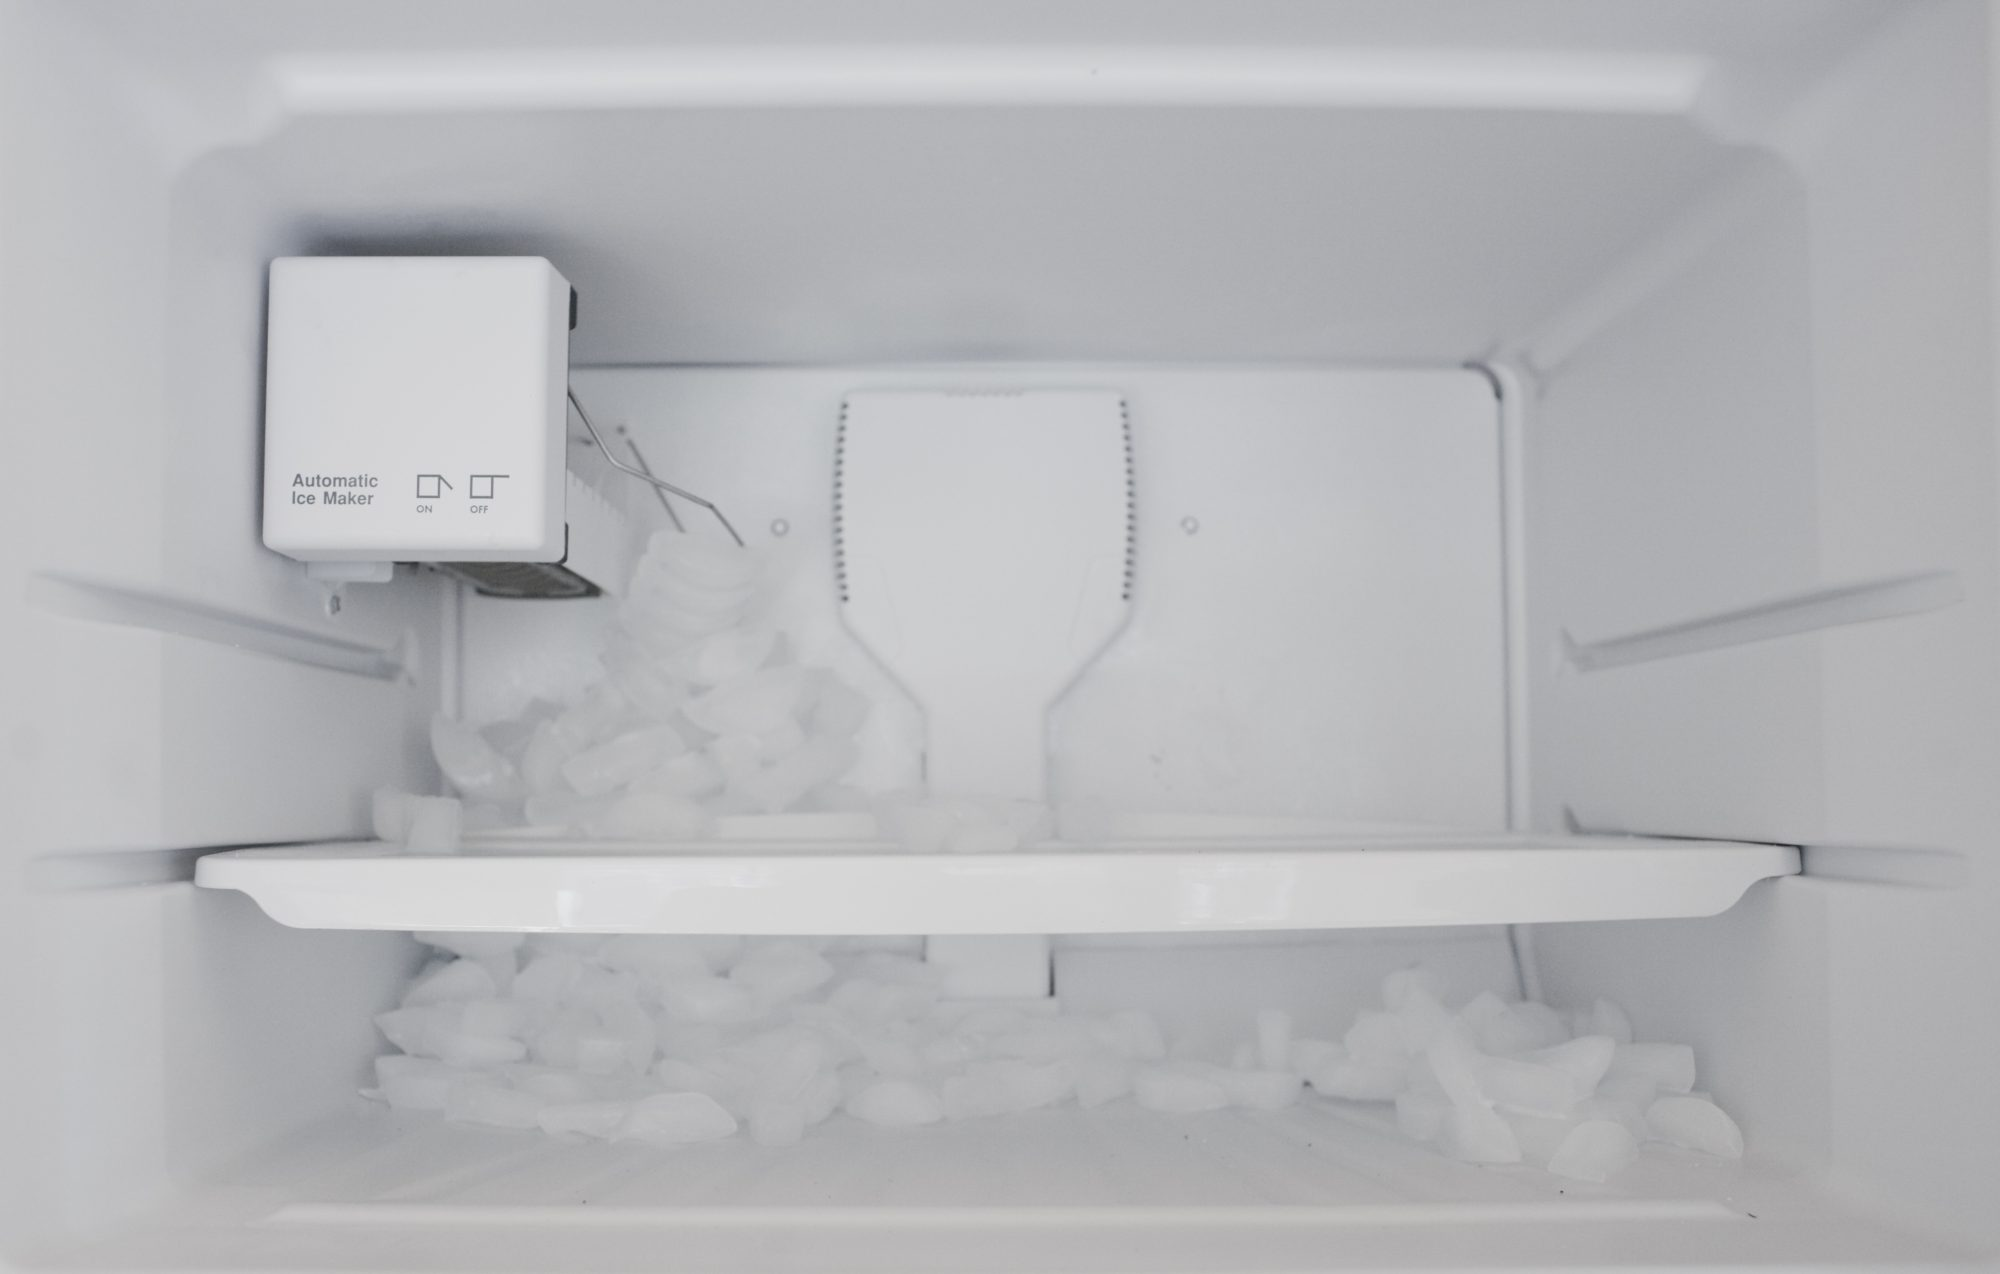 How To Clean Your Ice Maker Allrecipes